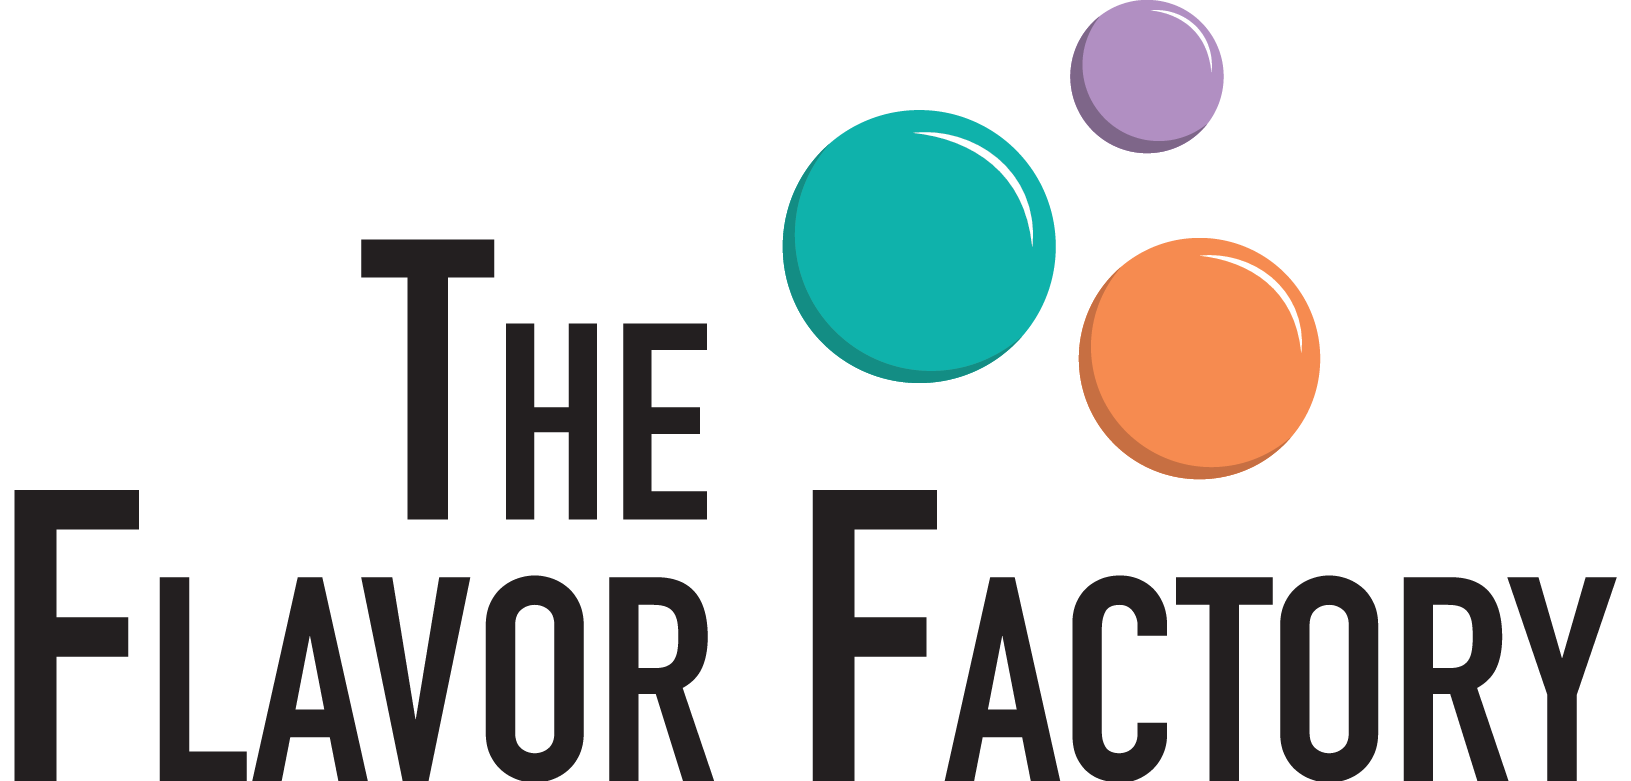 The flavor factory . Factories clipart pharma industry